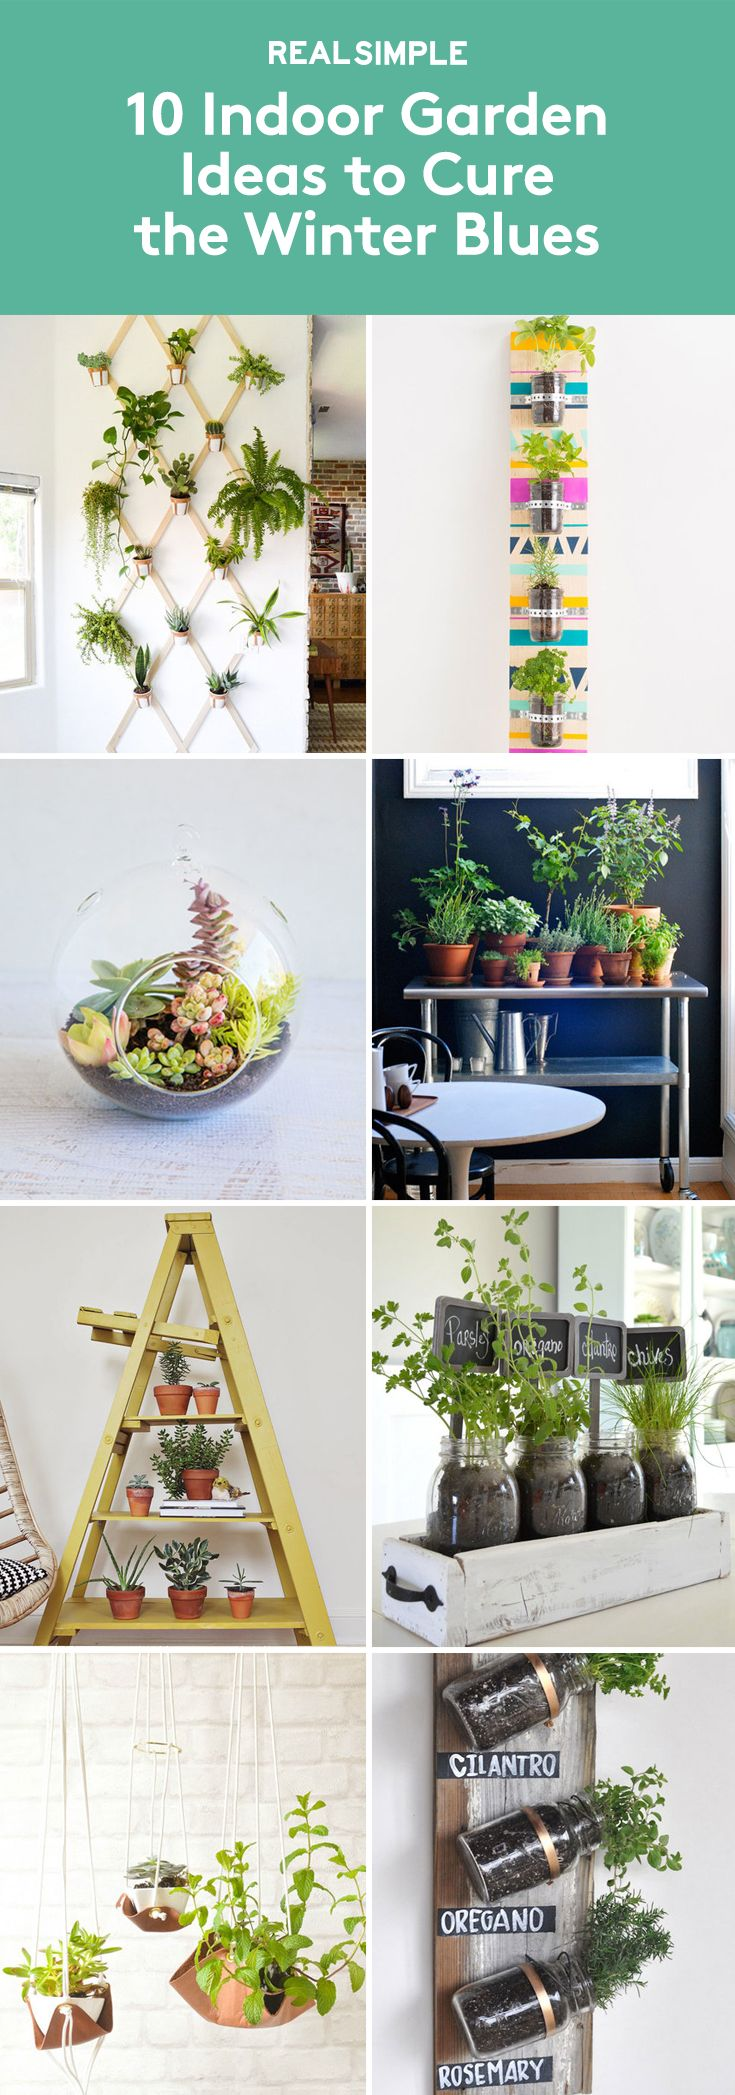 227 best images about gardening on pinterest gardens for Indoor gardening meaning